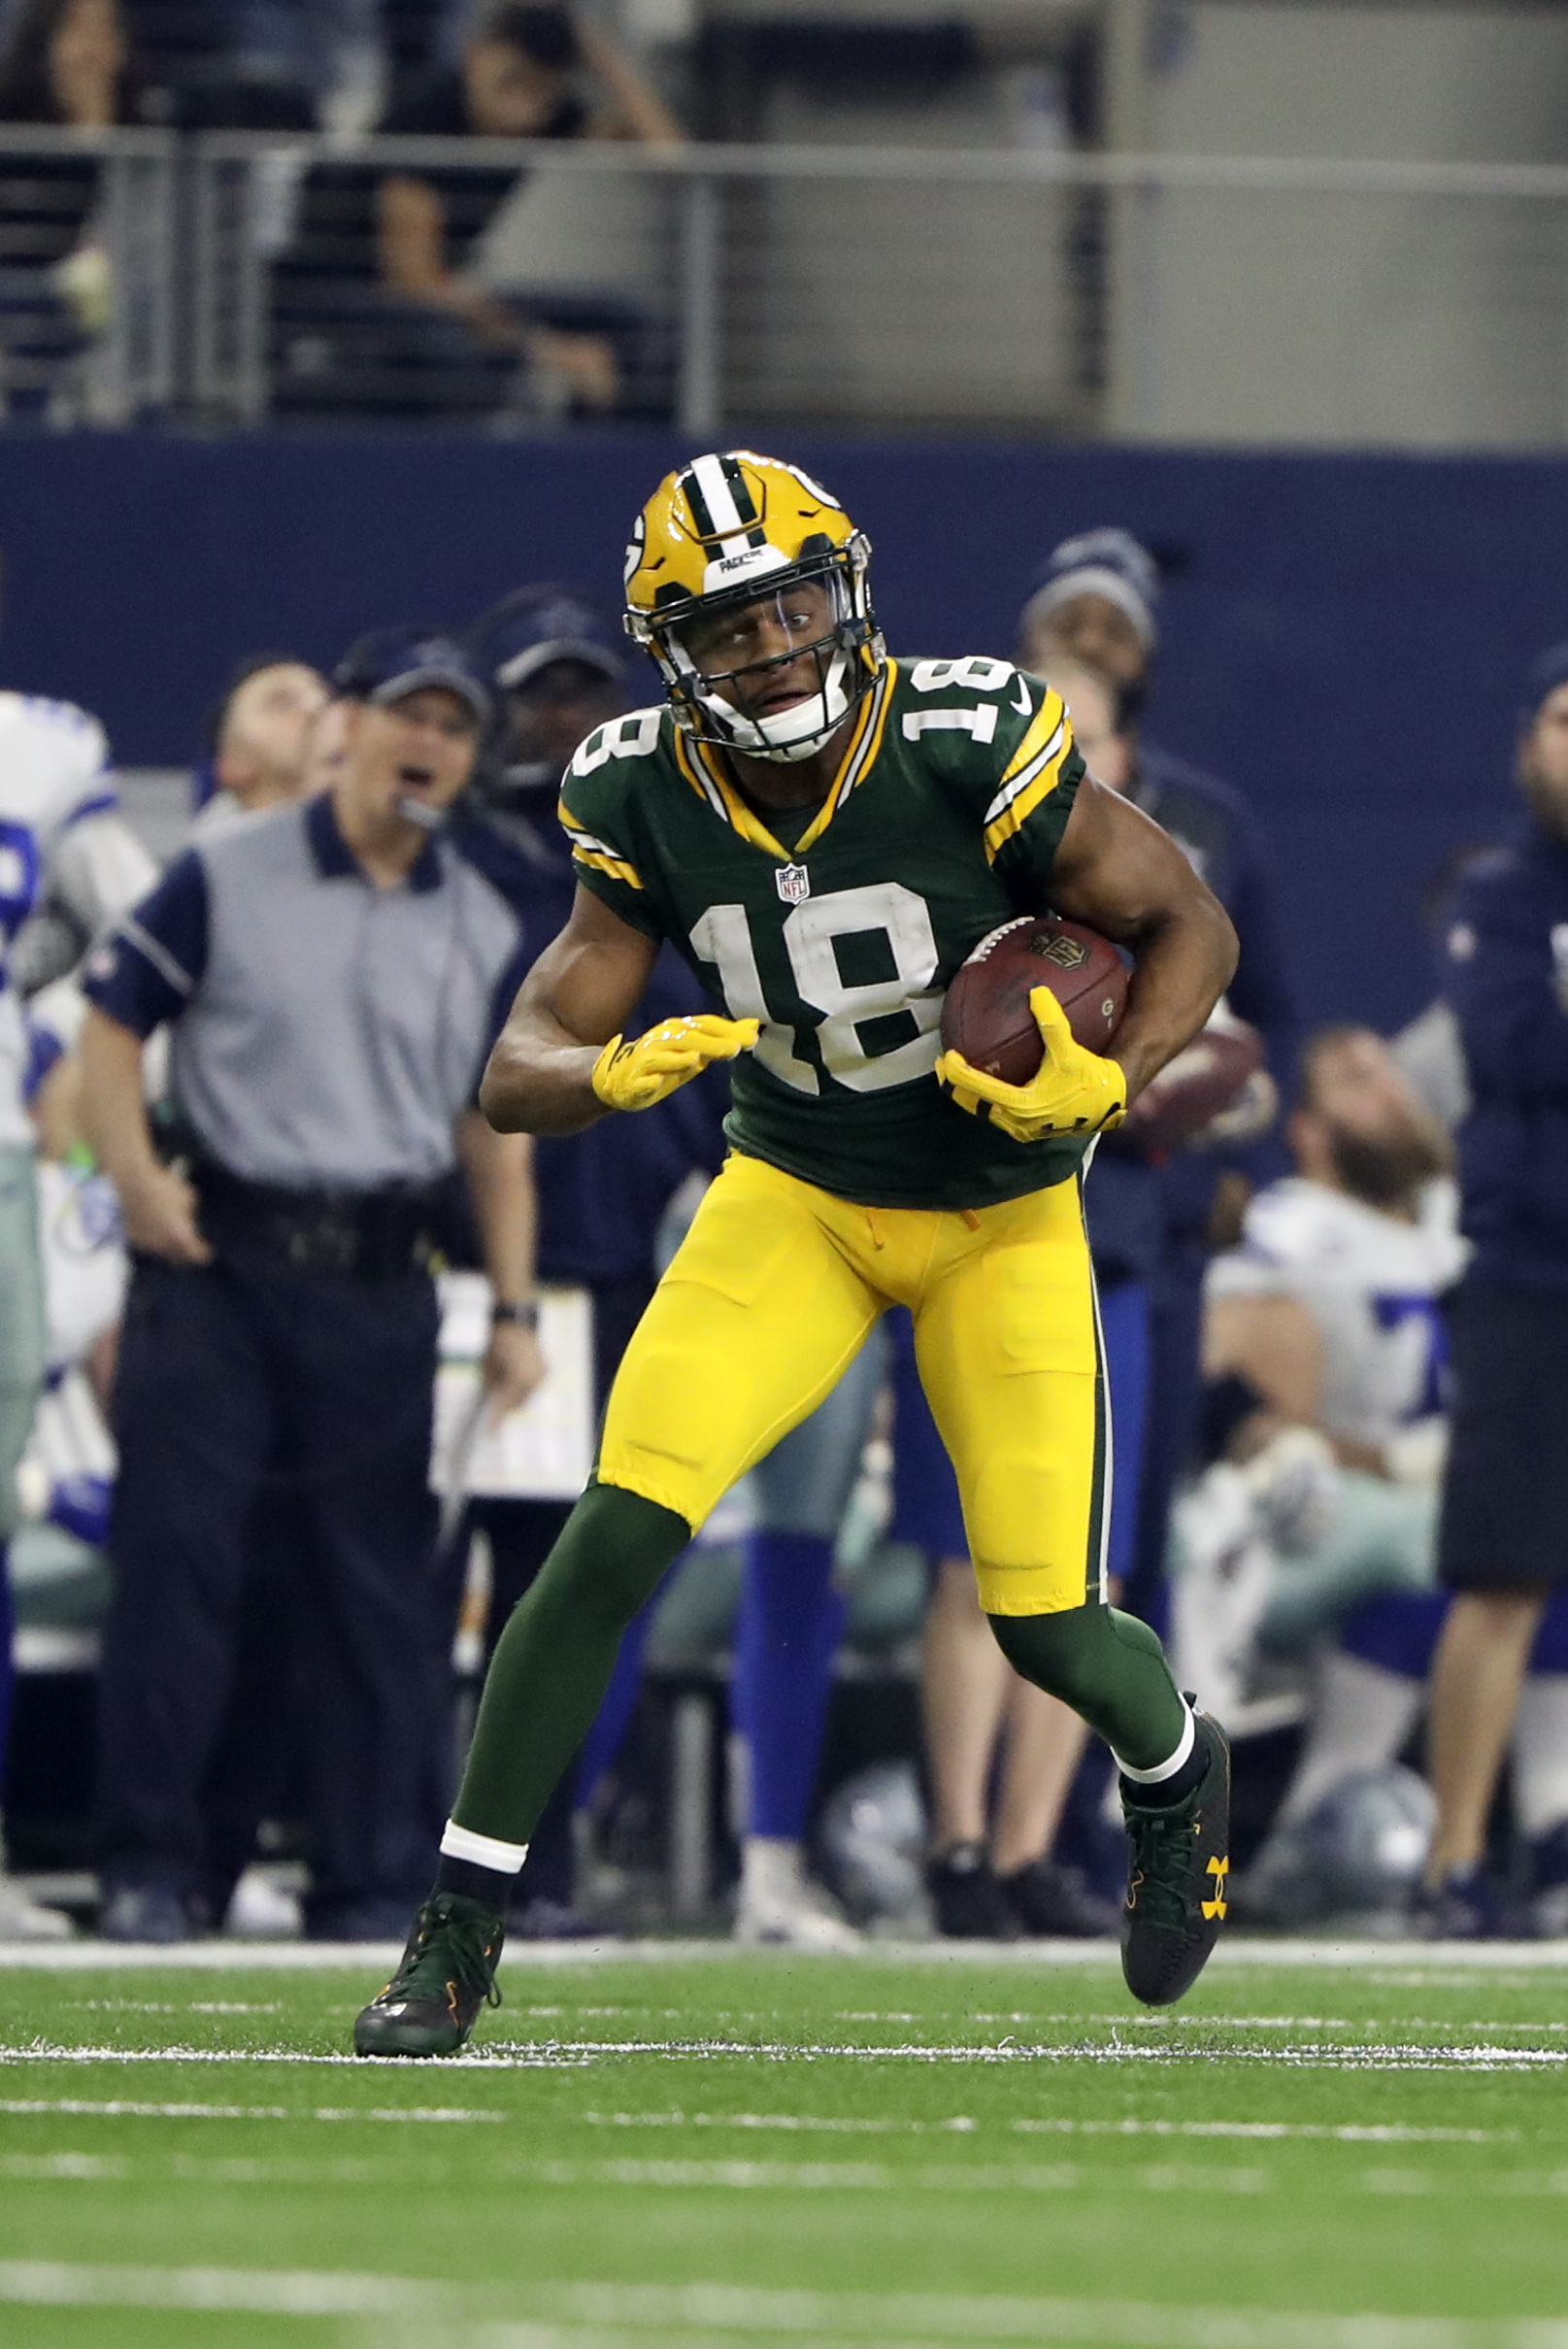 9814424-nfl-nfc-divisional-green-bay-packers-at-dallas-cowboys